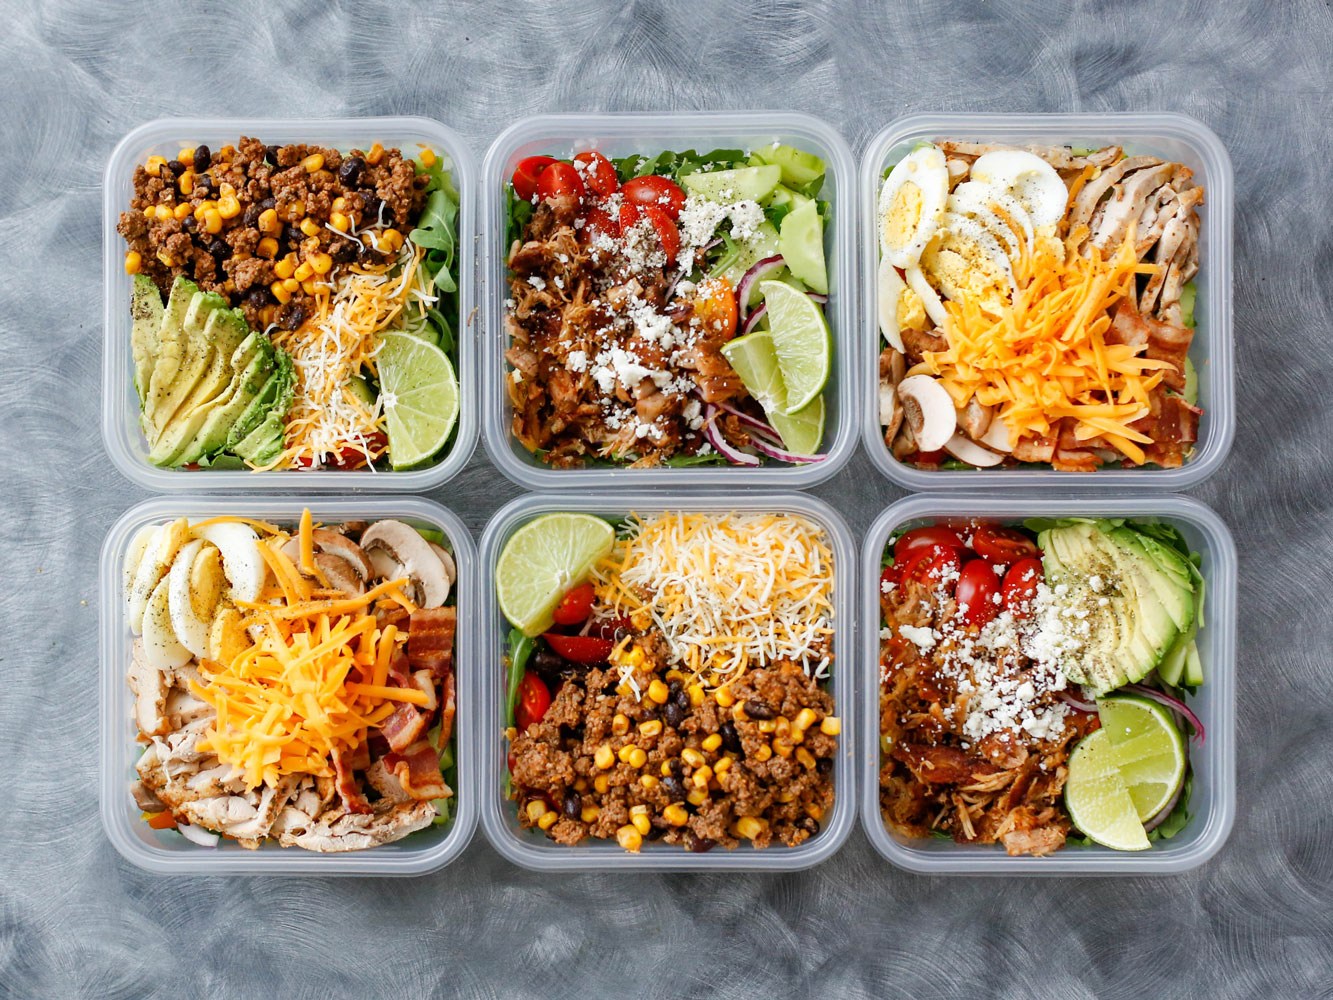 Meal Prep Ideas: 17 Healthy Recipes and Ideas